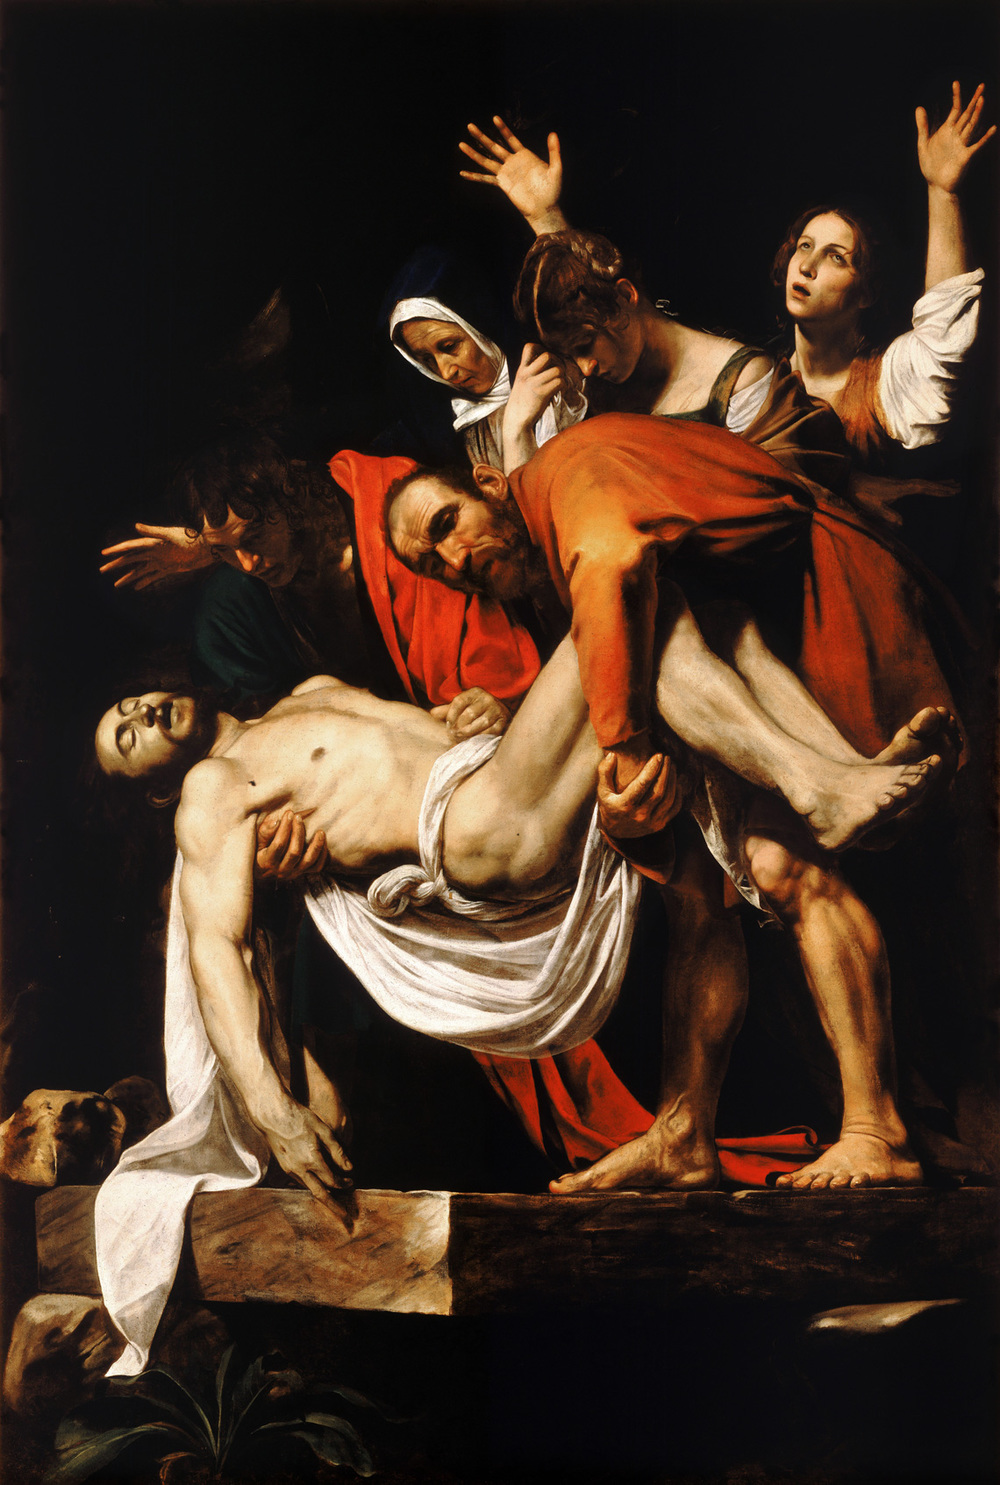 The_Entombment_of_Christ-Caravaggio_(c.1602-3)_CC.jpg